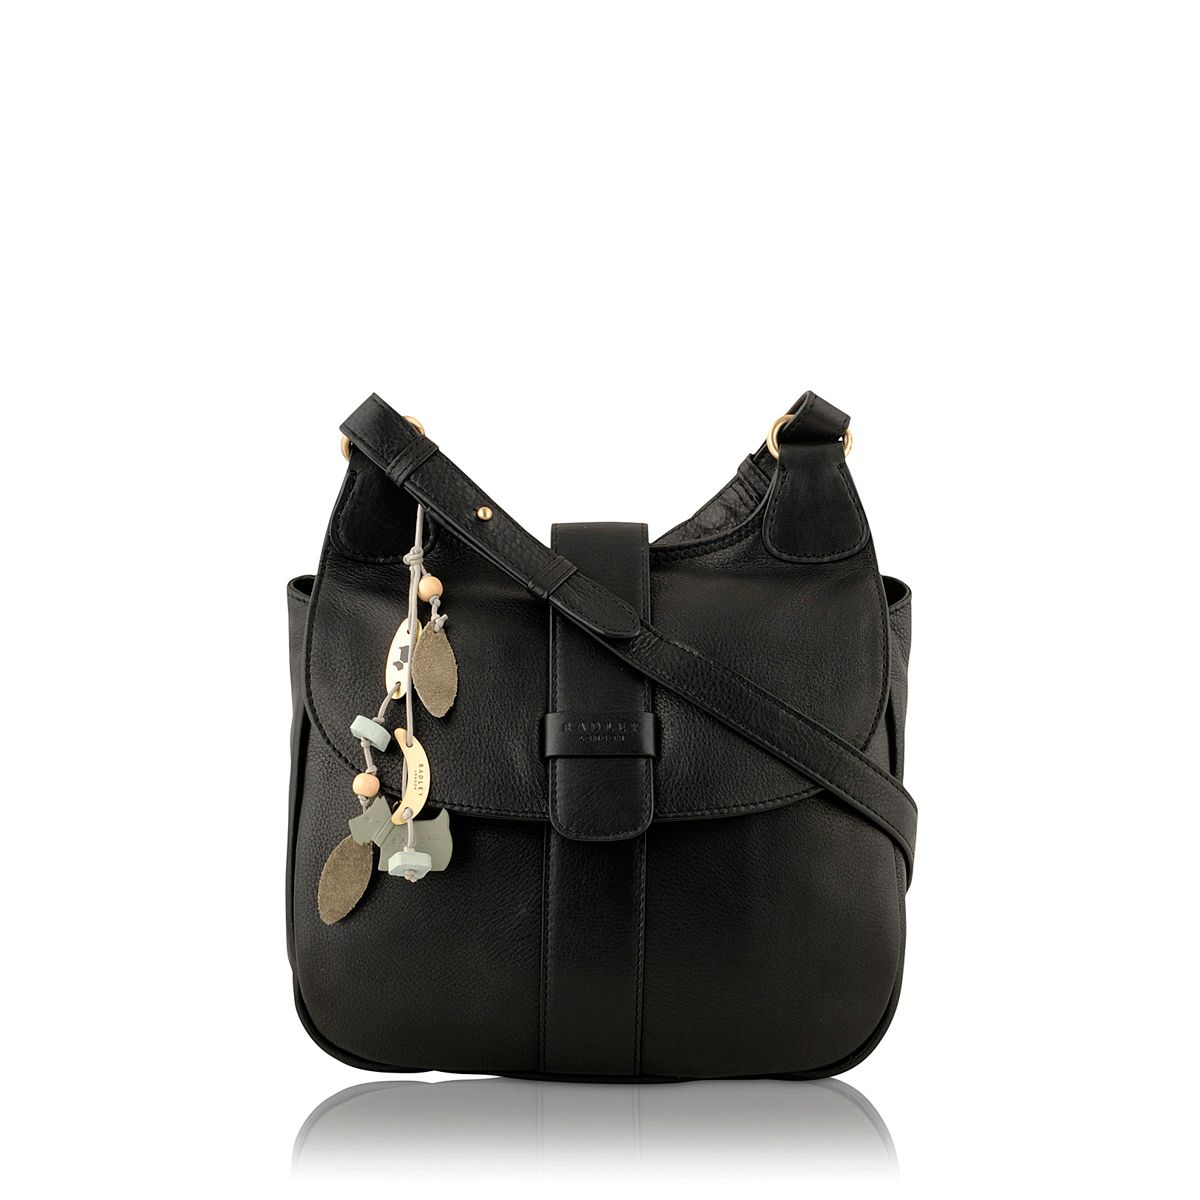 Black leather flapover cross body bag